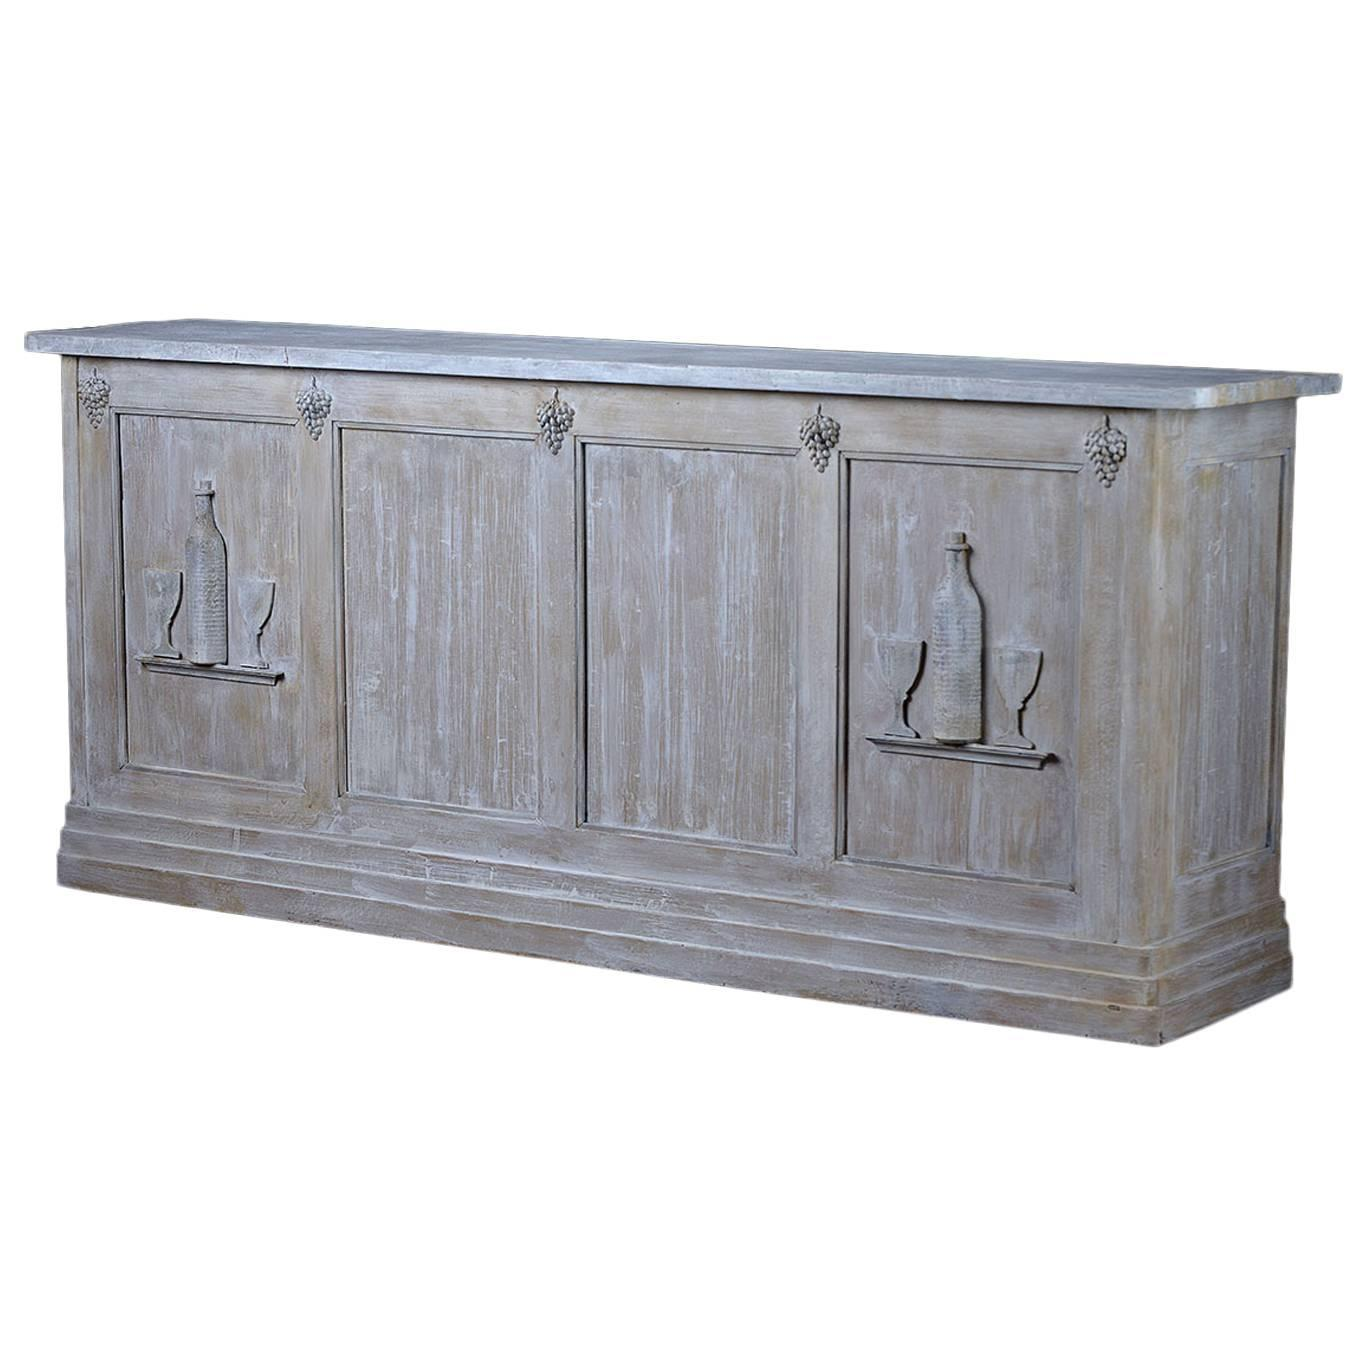 Antique French Wood Buffet Wine Tasting Bar At 1stdibs